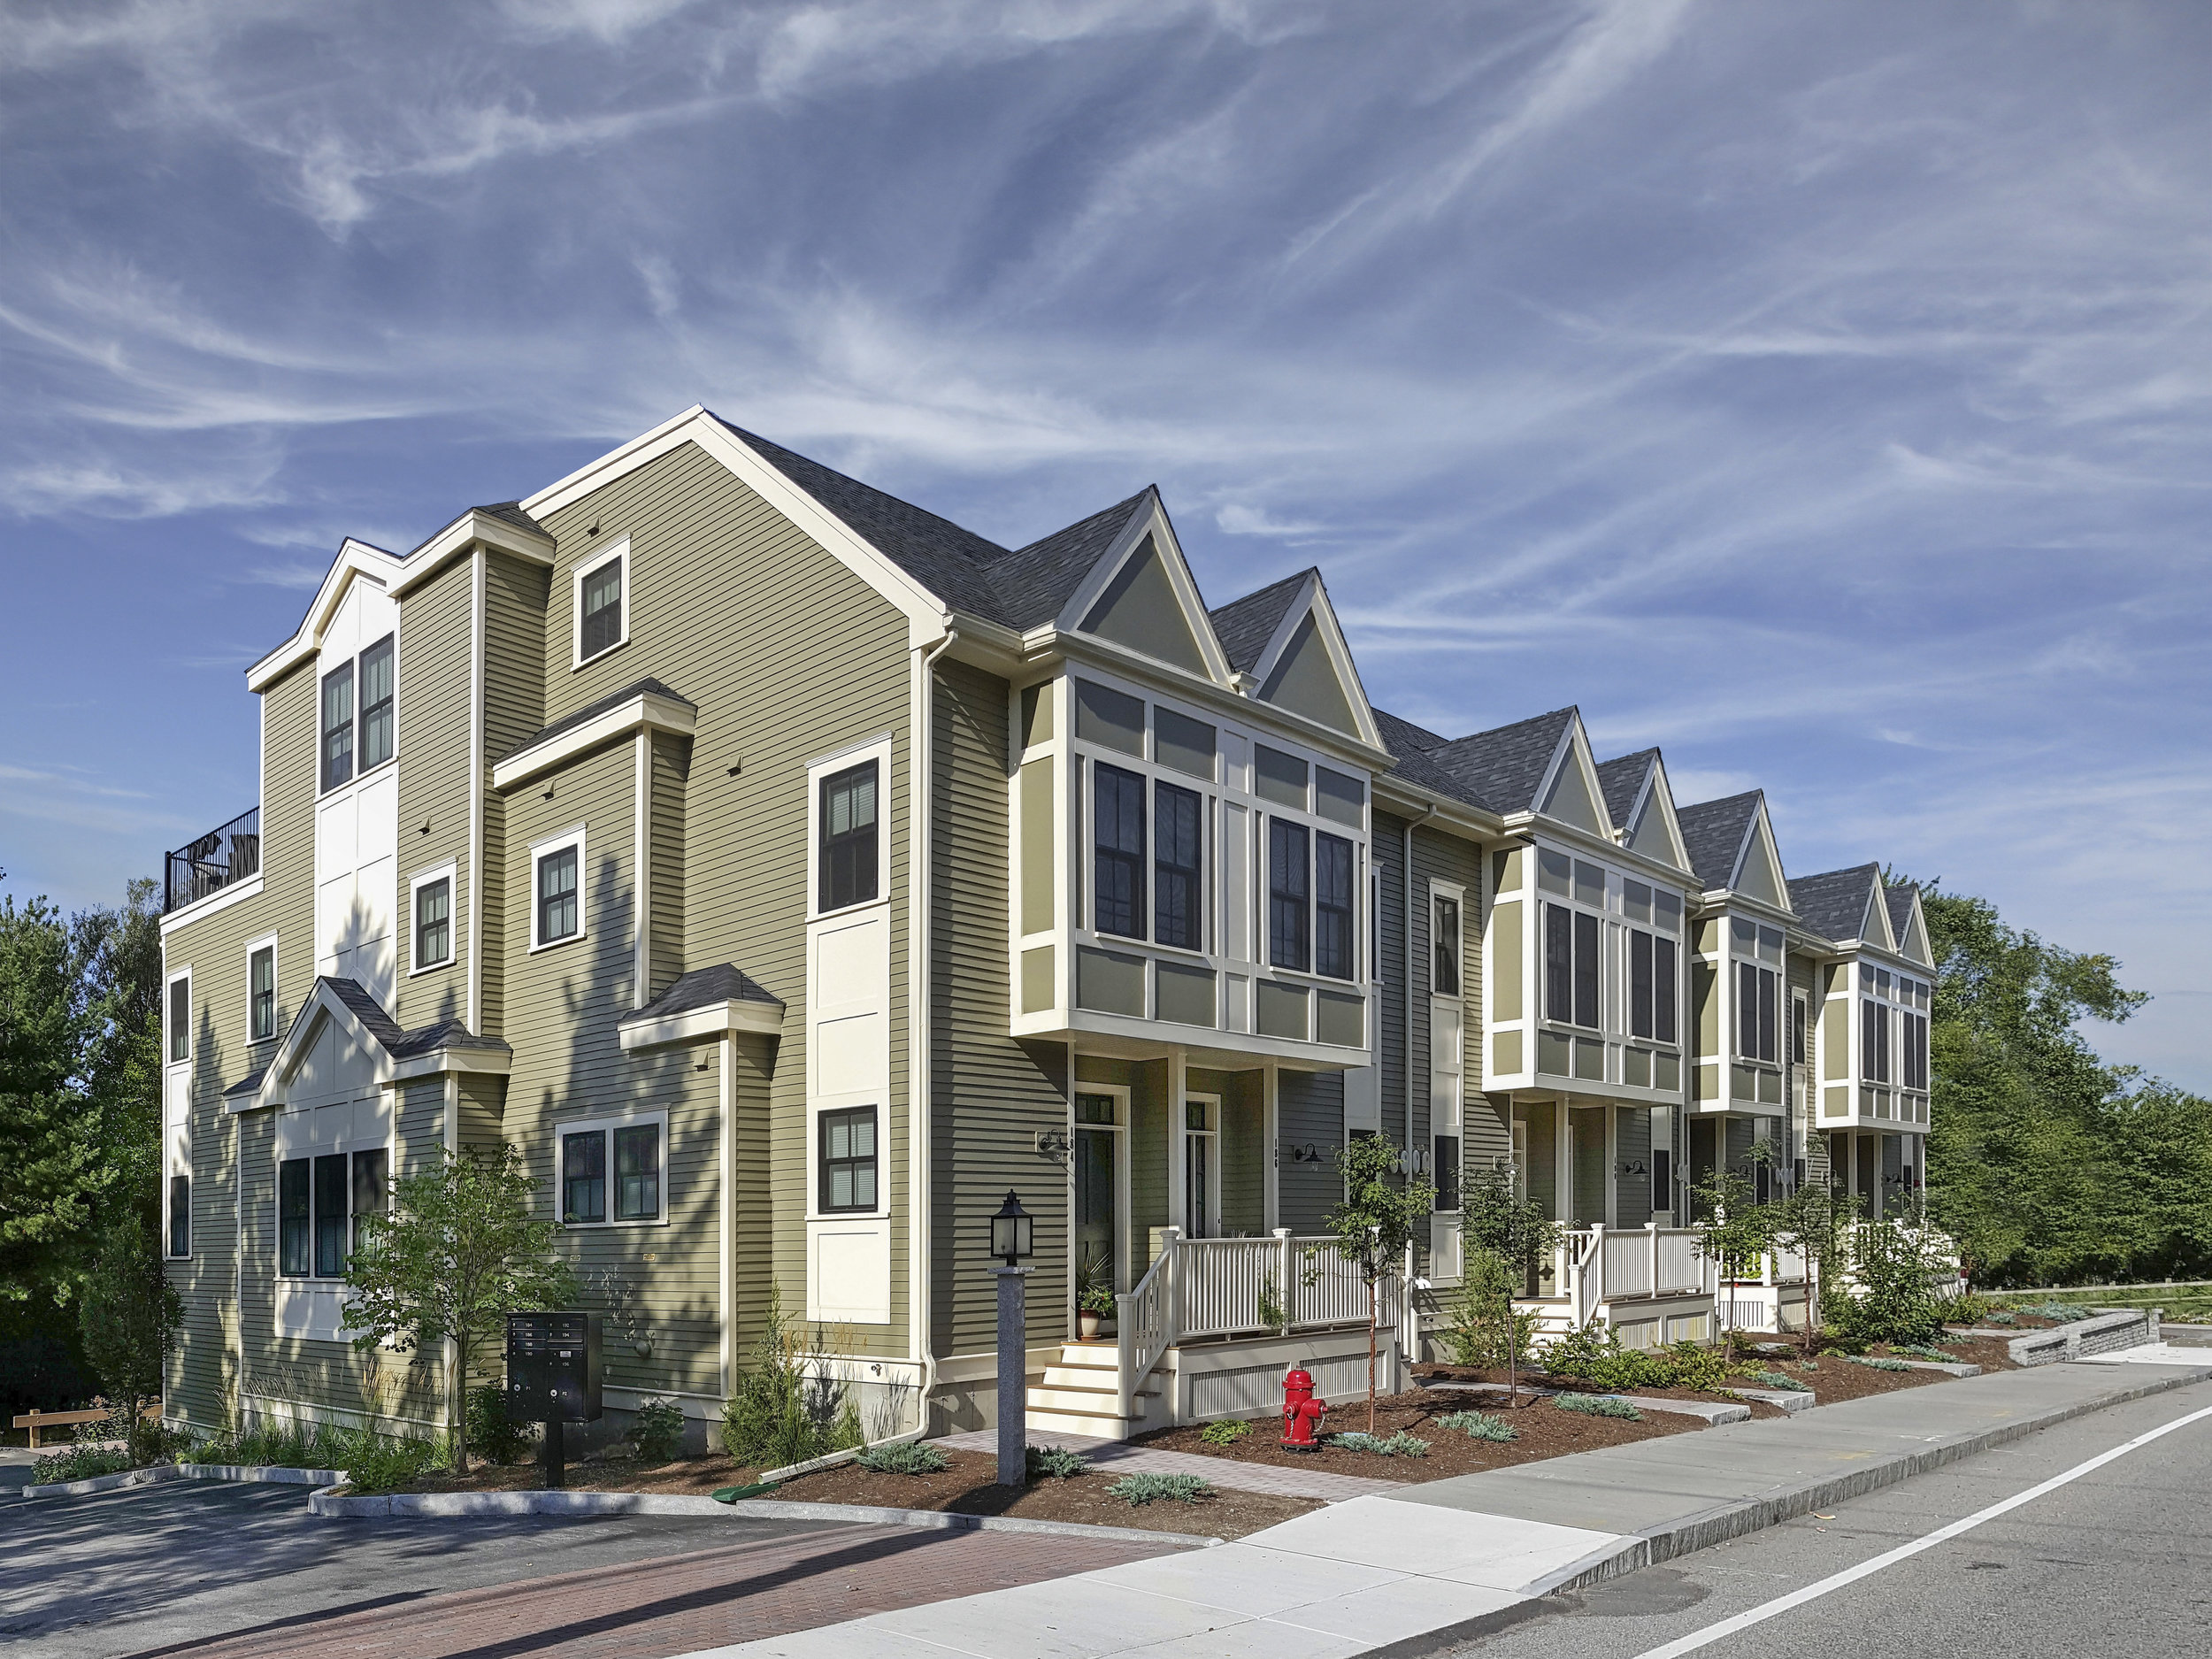 Pleasant Street Townhomes